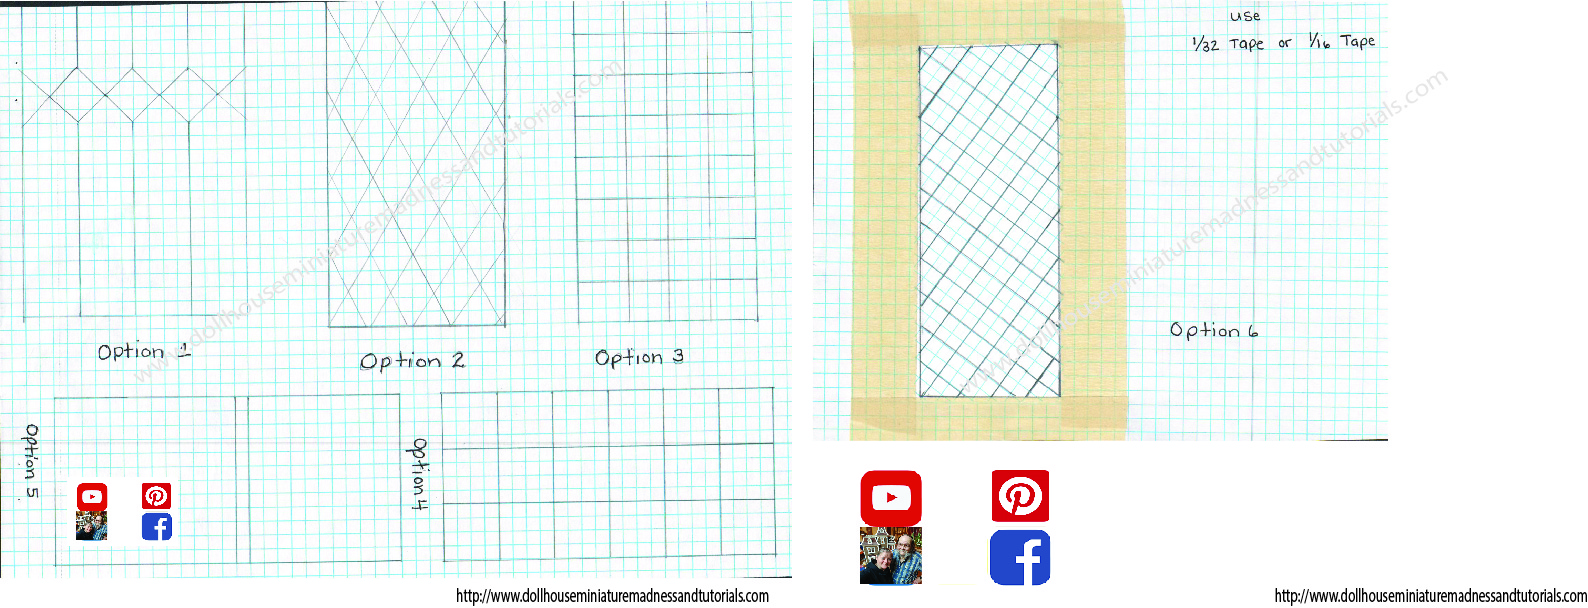 Templates-Other Misc - Dollhouse Miniature Madness and Tutorials